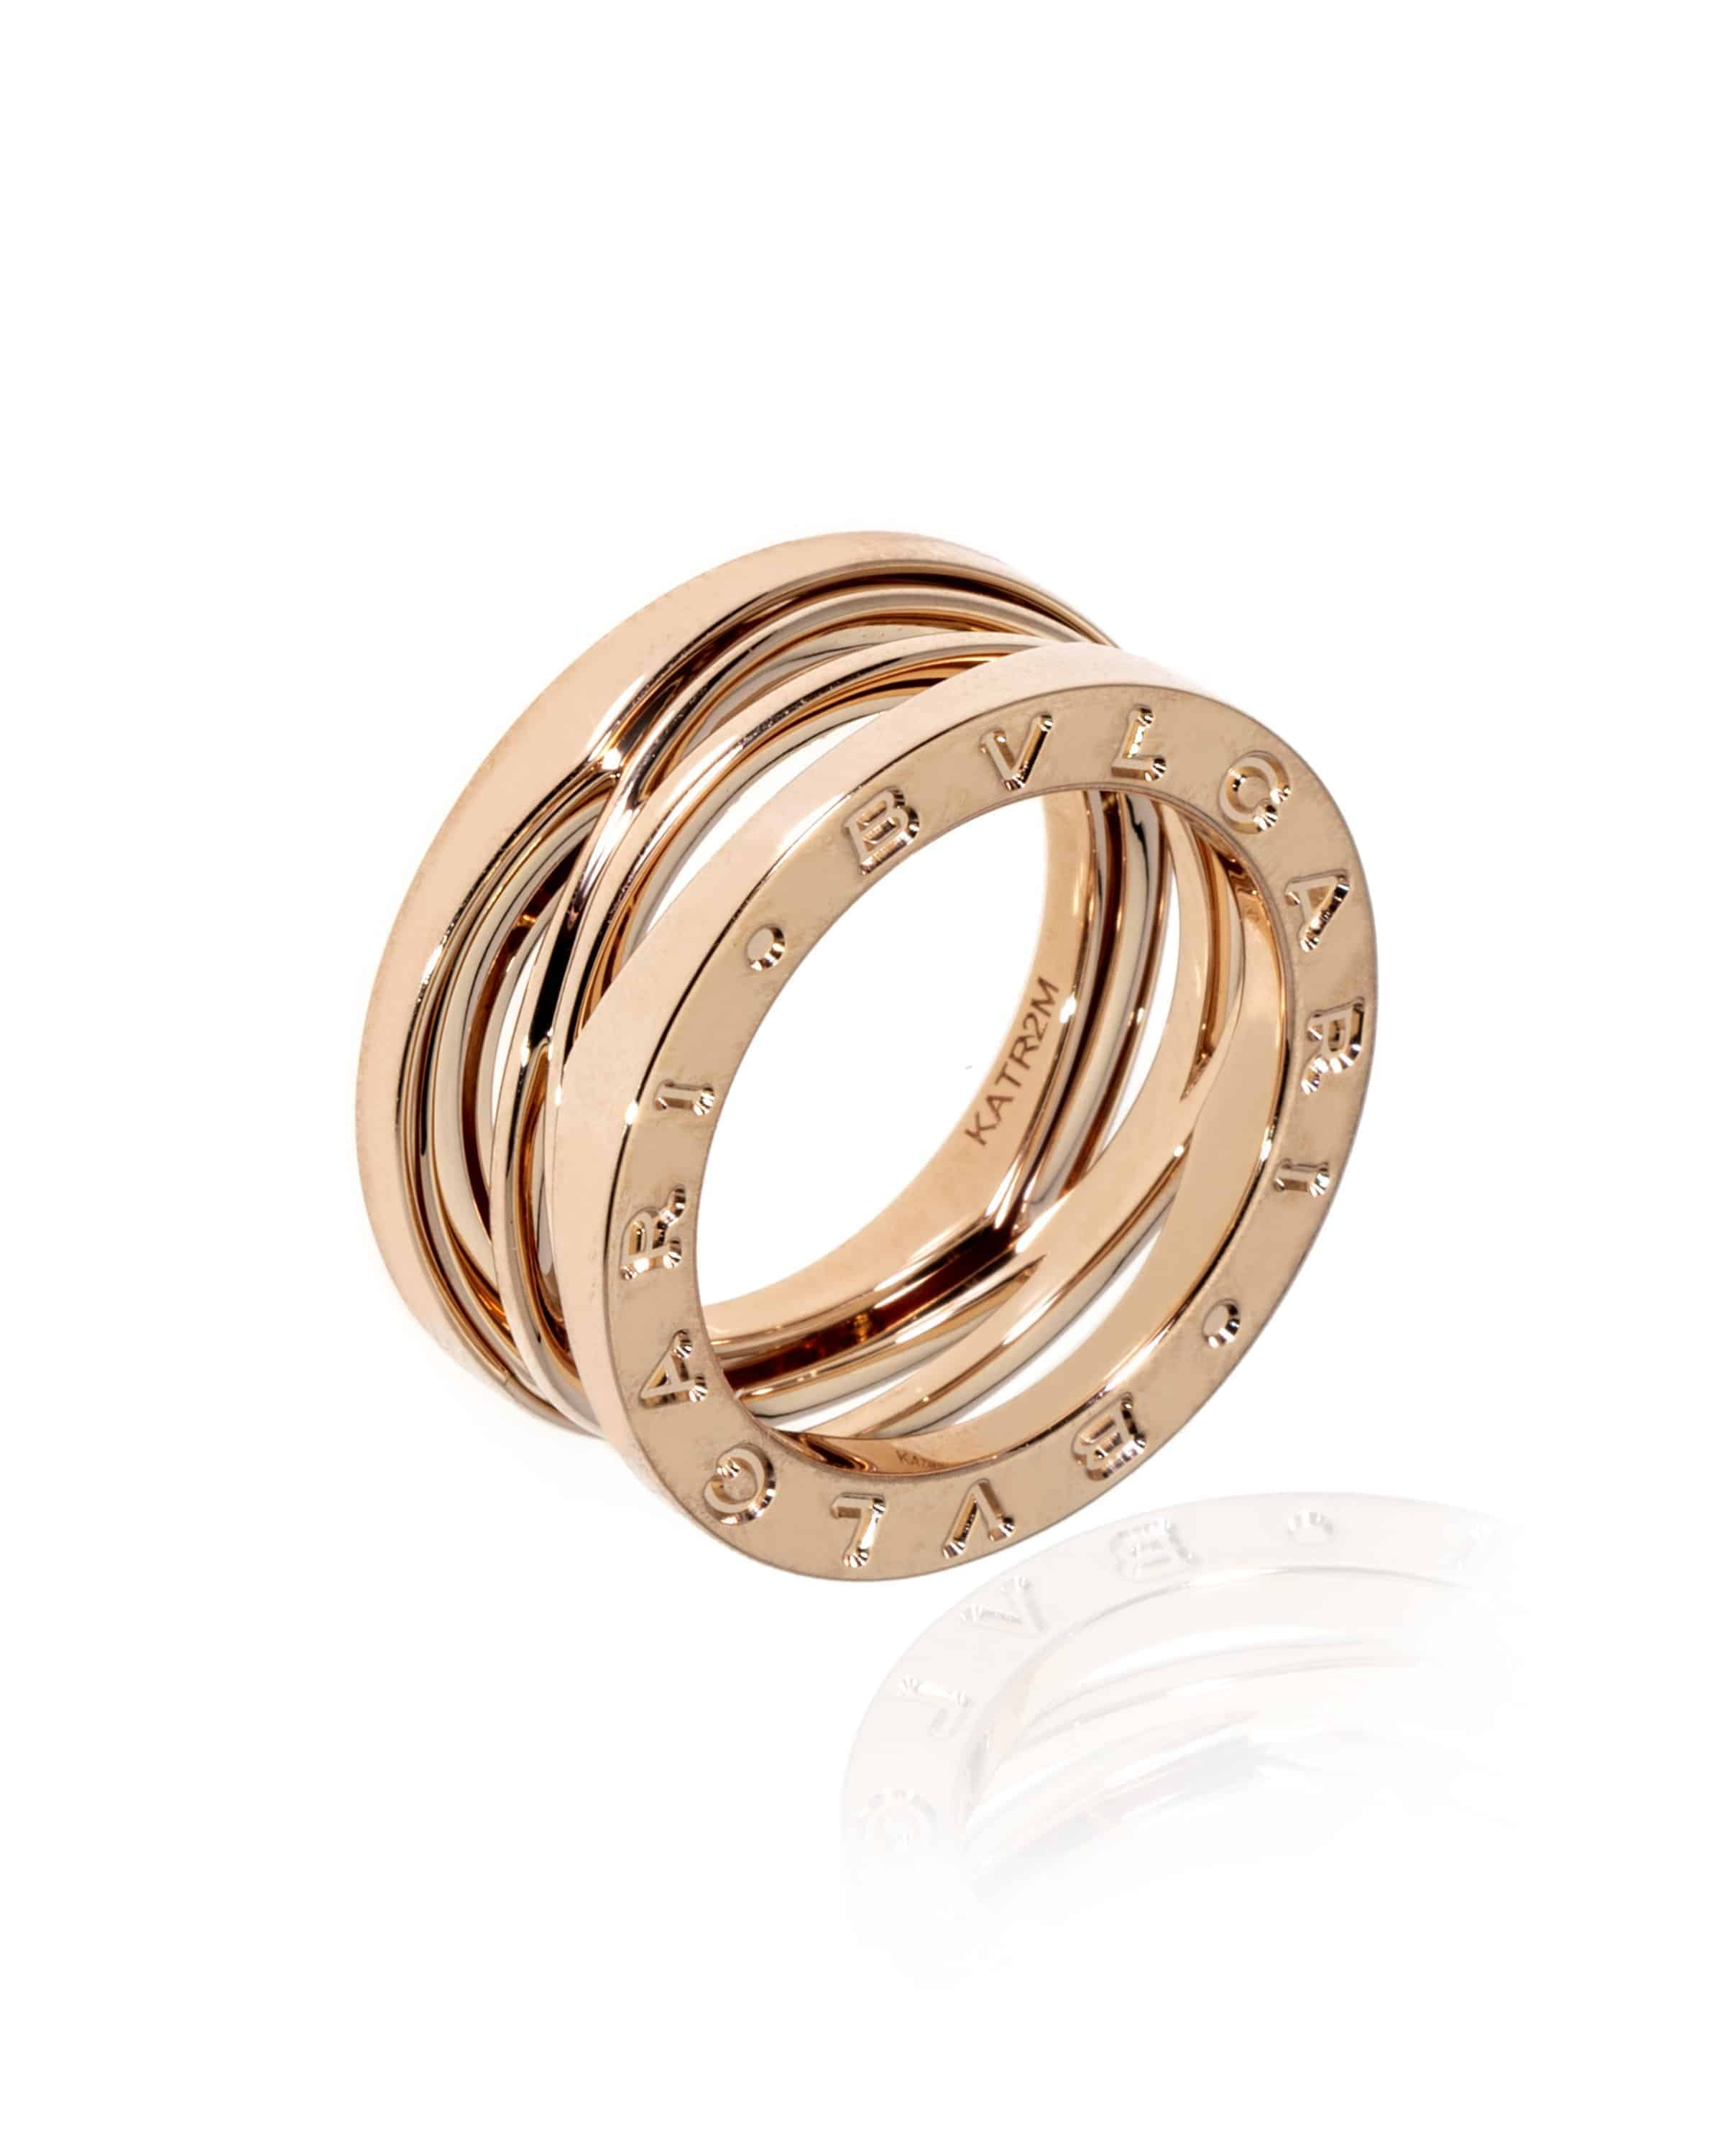 Bvlgari B Zero 18k Rose Gold Band Ring Size 6.25. AN858029